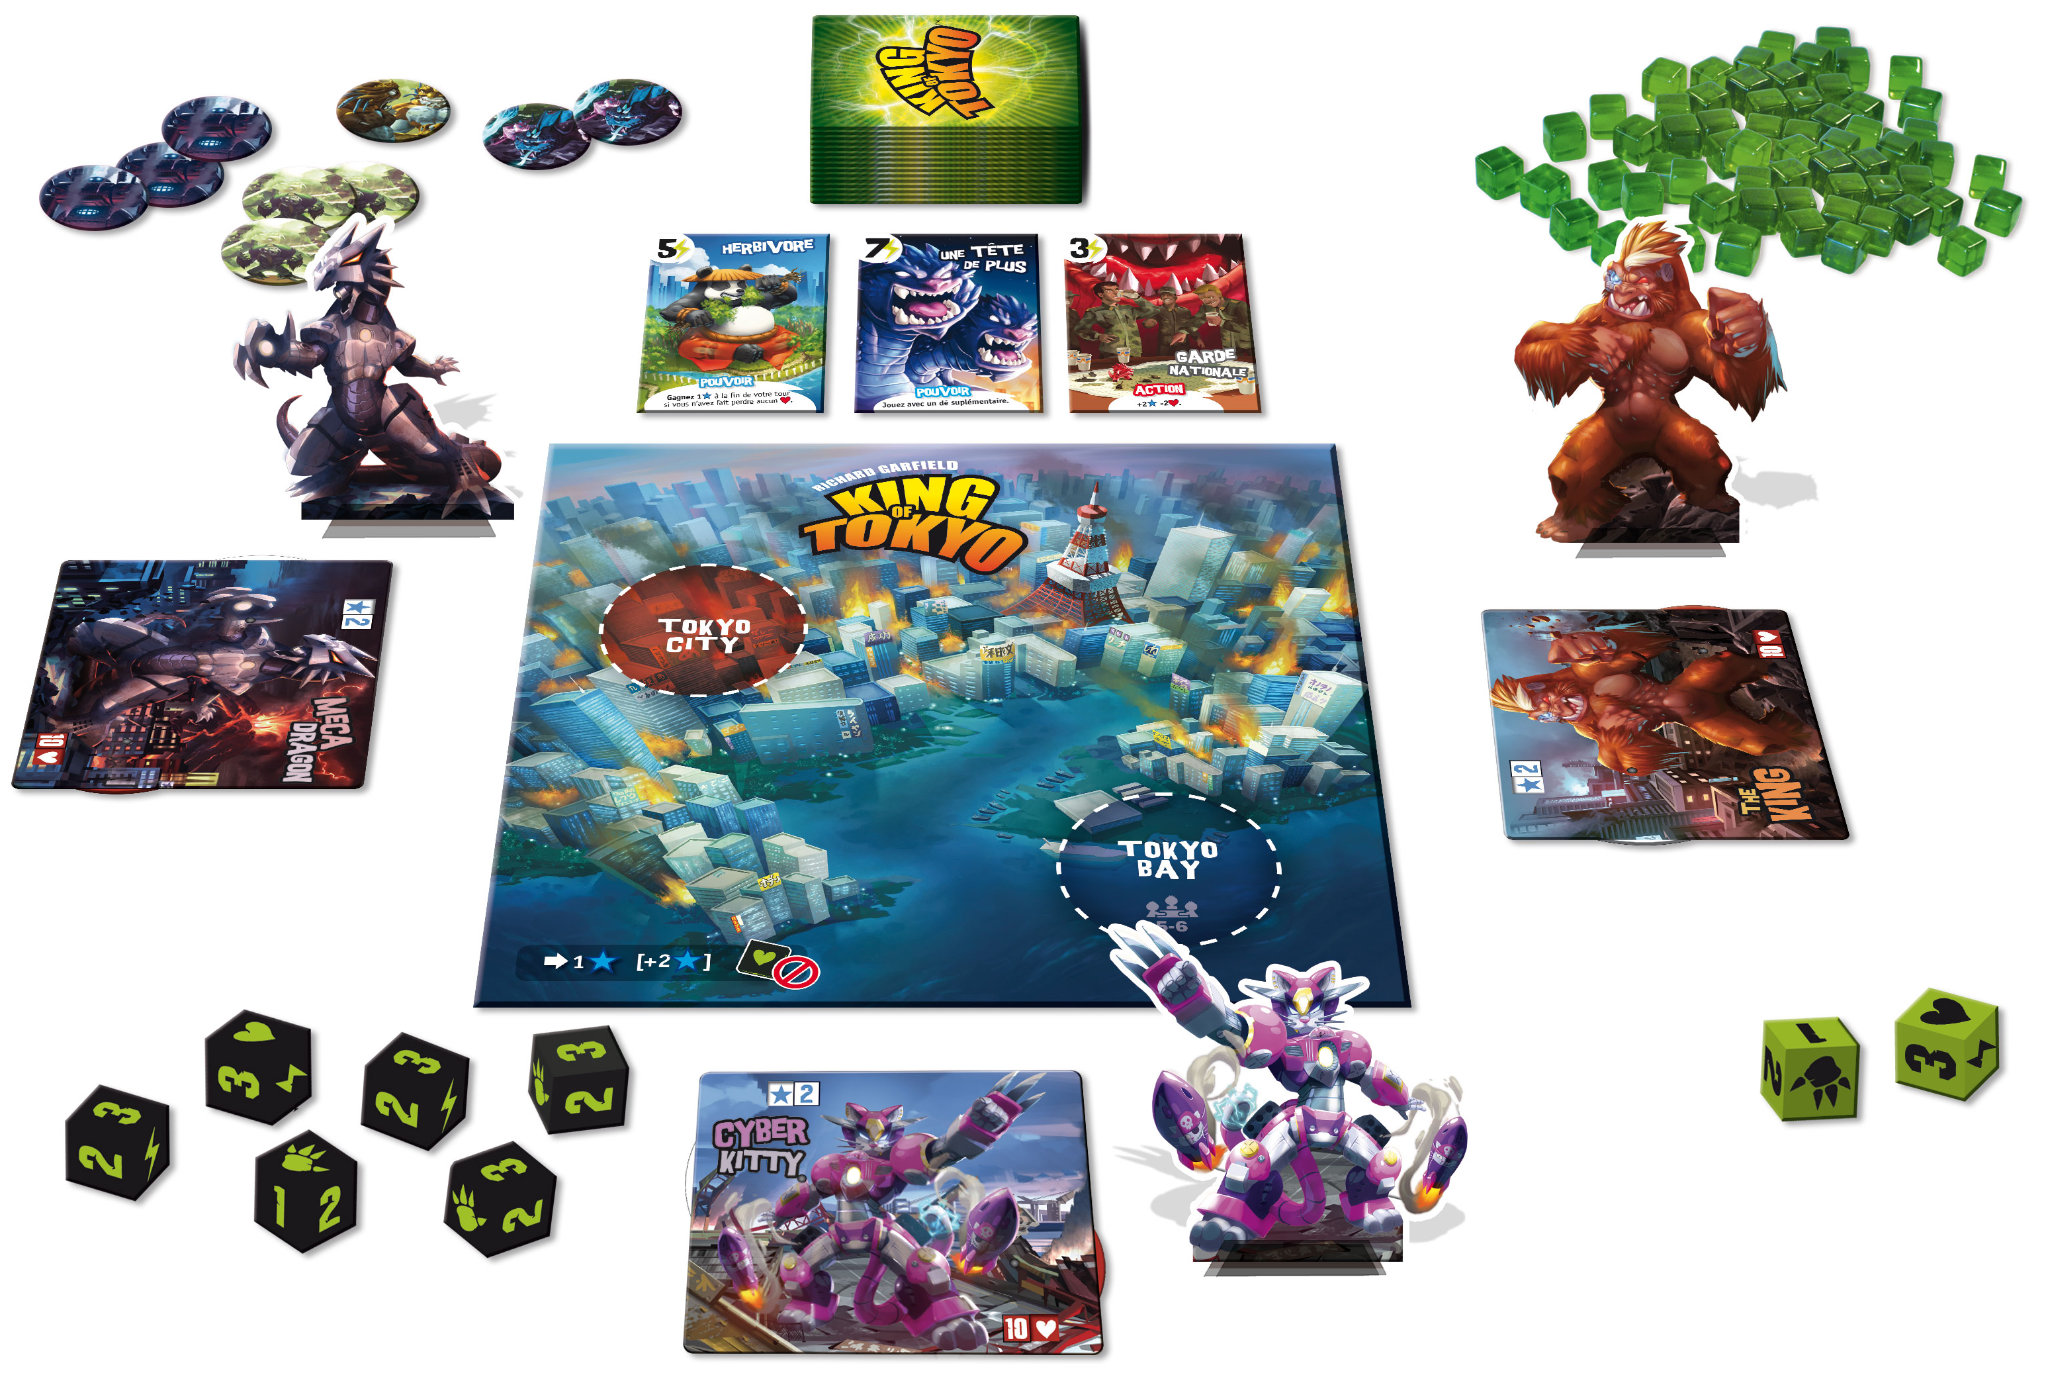 King of tokyo jeu de soci t chez jeux de nim for Activities for couples in nyc